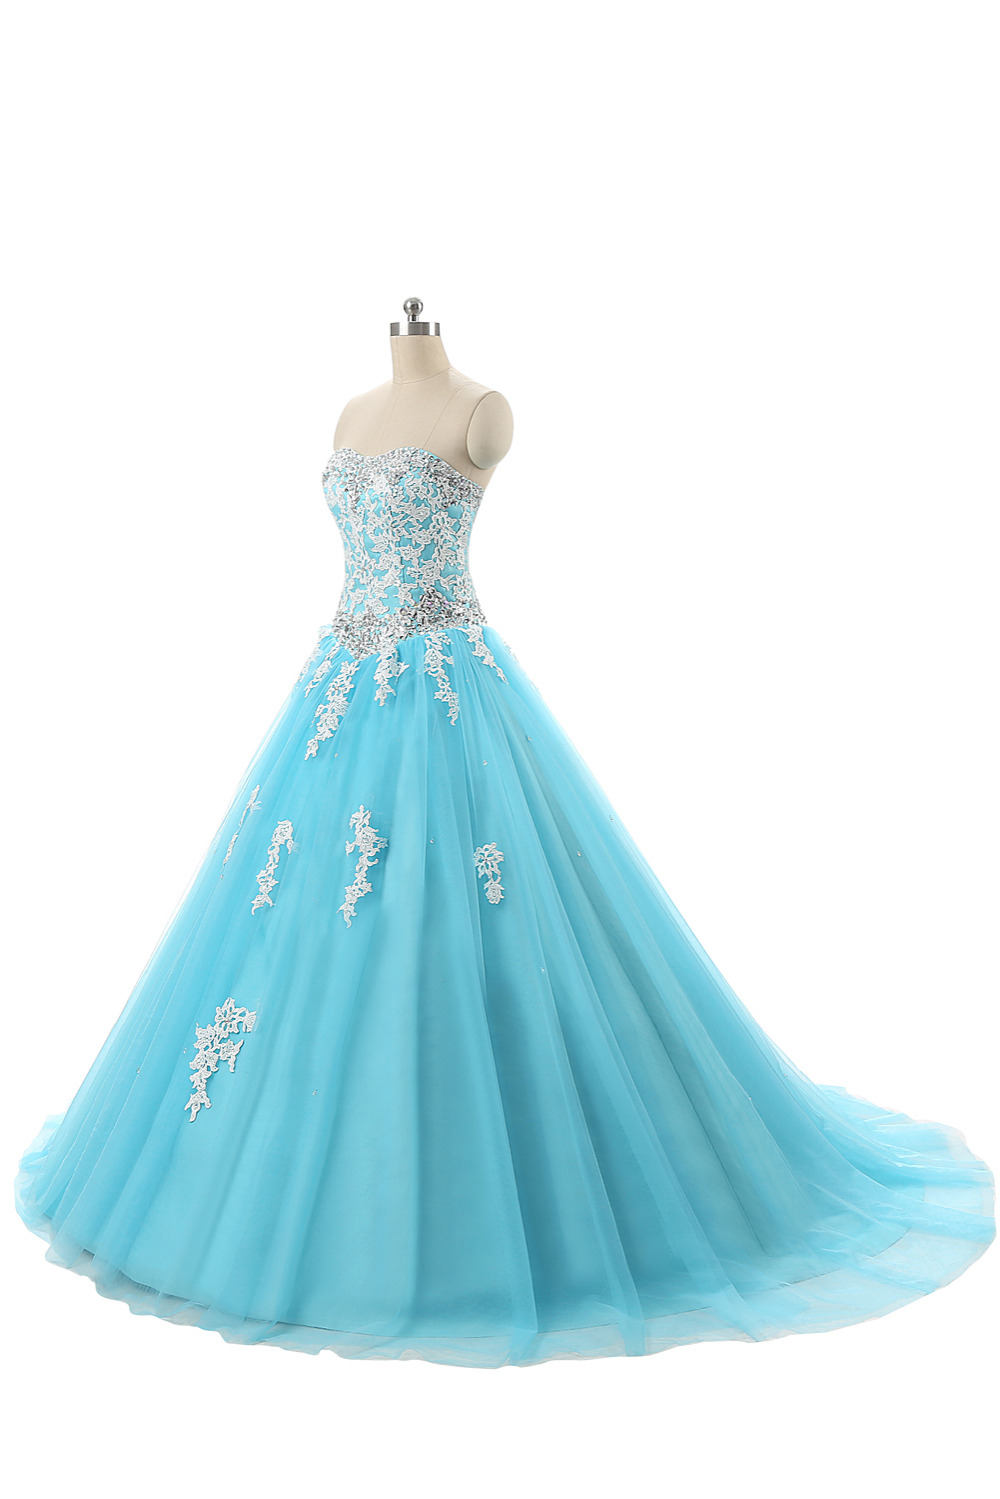 GSBRIDAL Light Blue Off the Shoulder Sweetheart Lace Appliques A Line Prom Dress